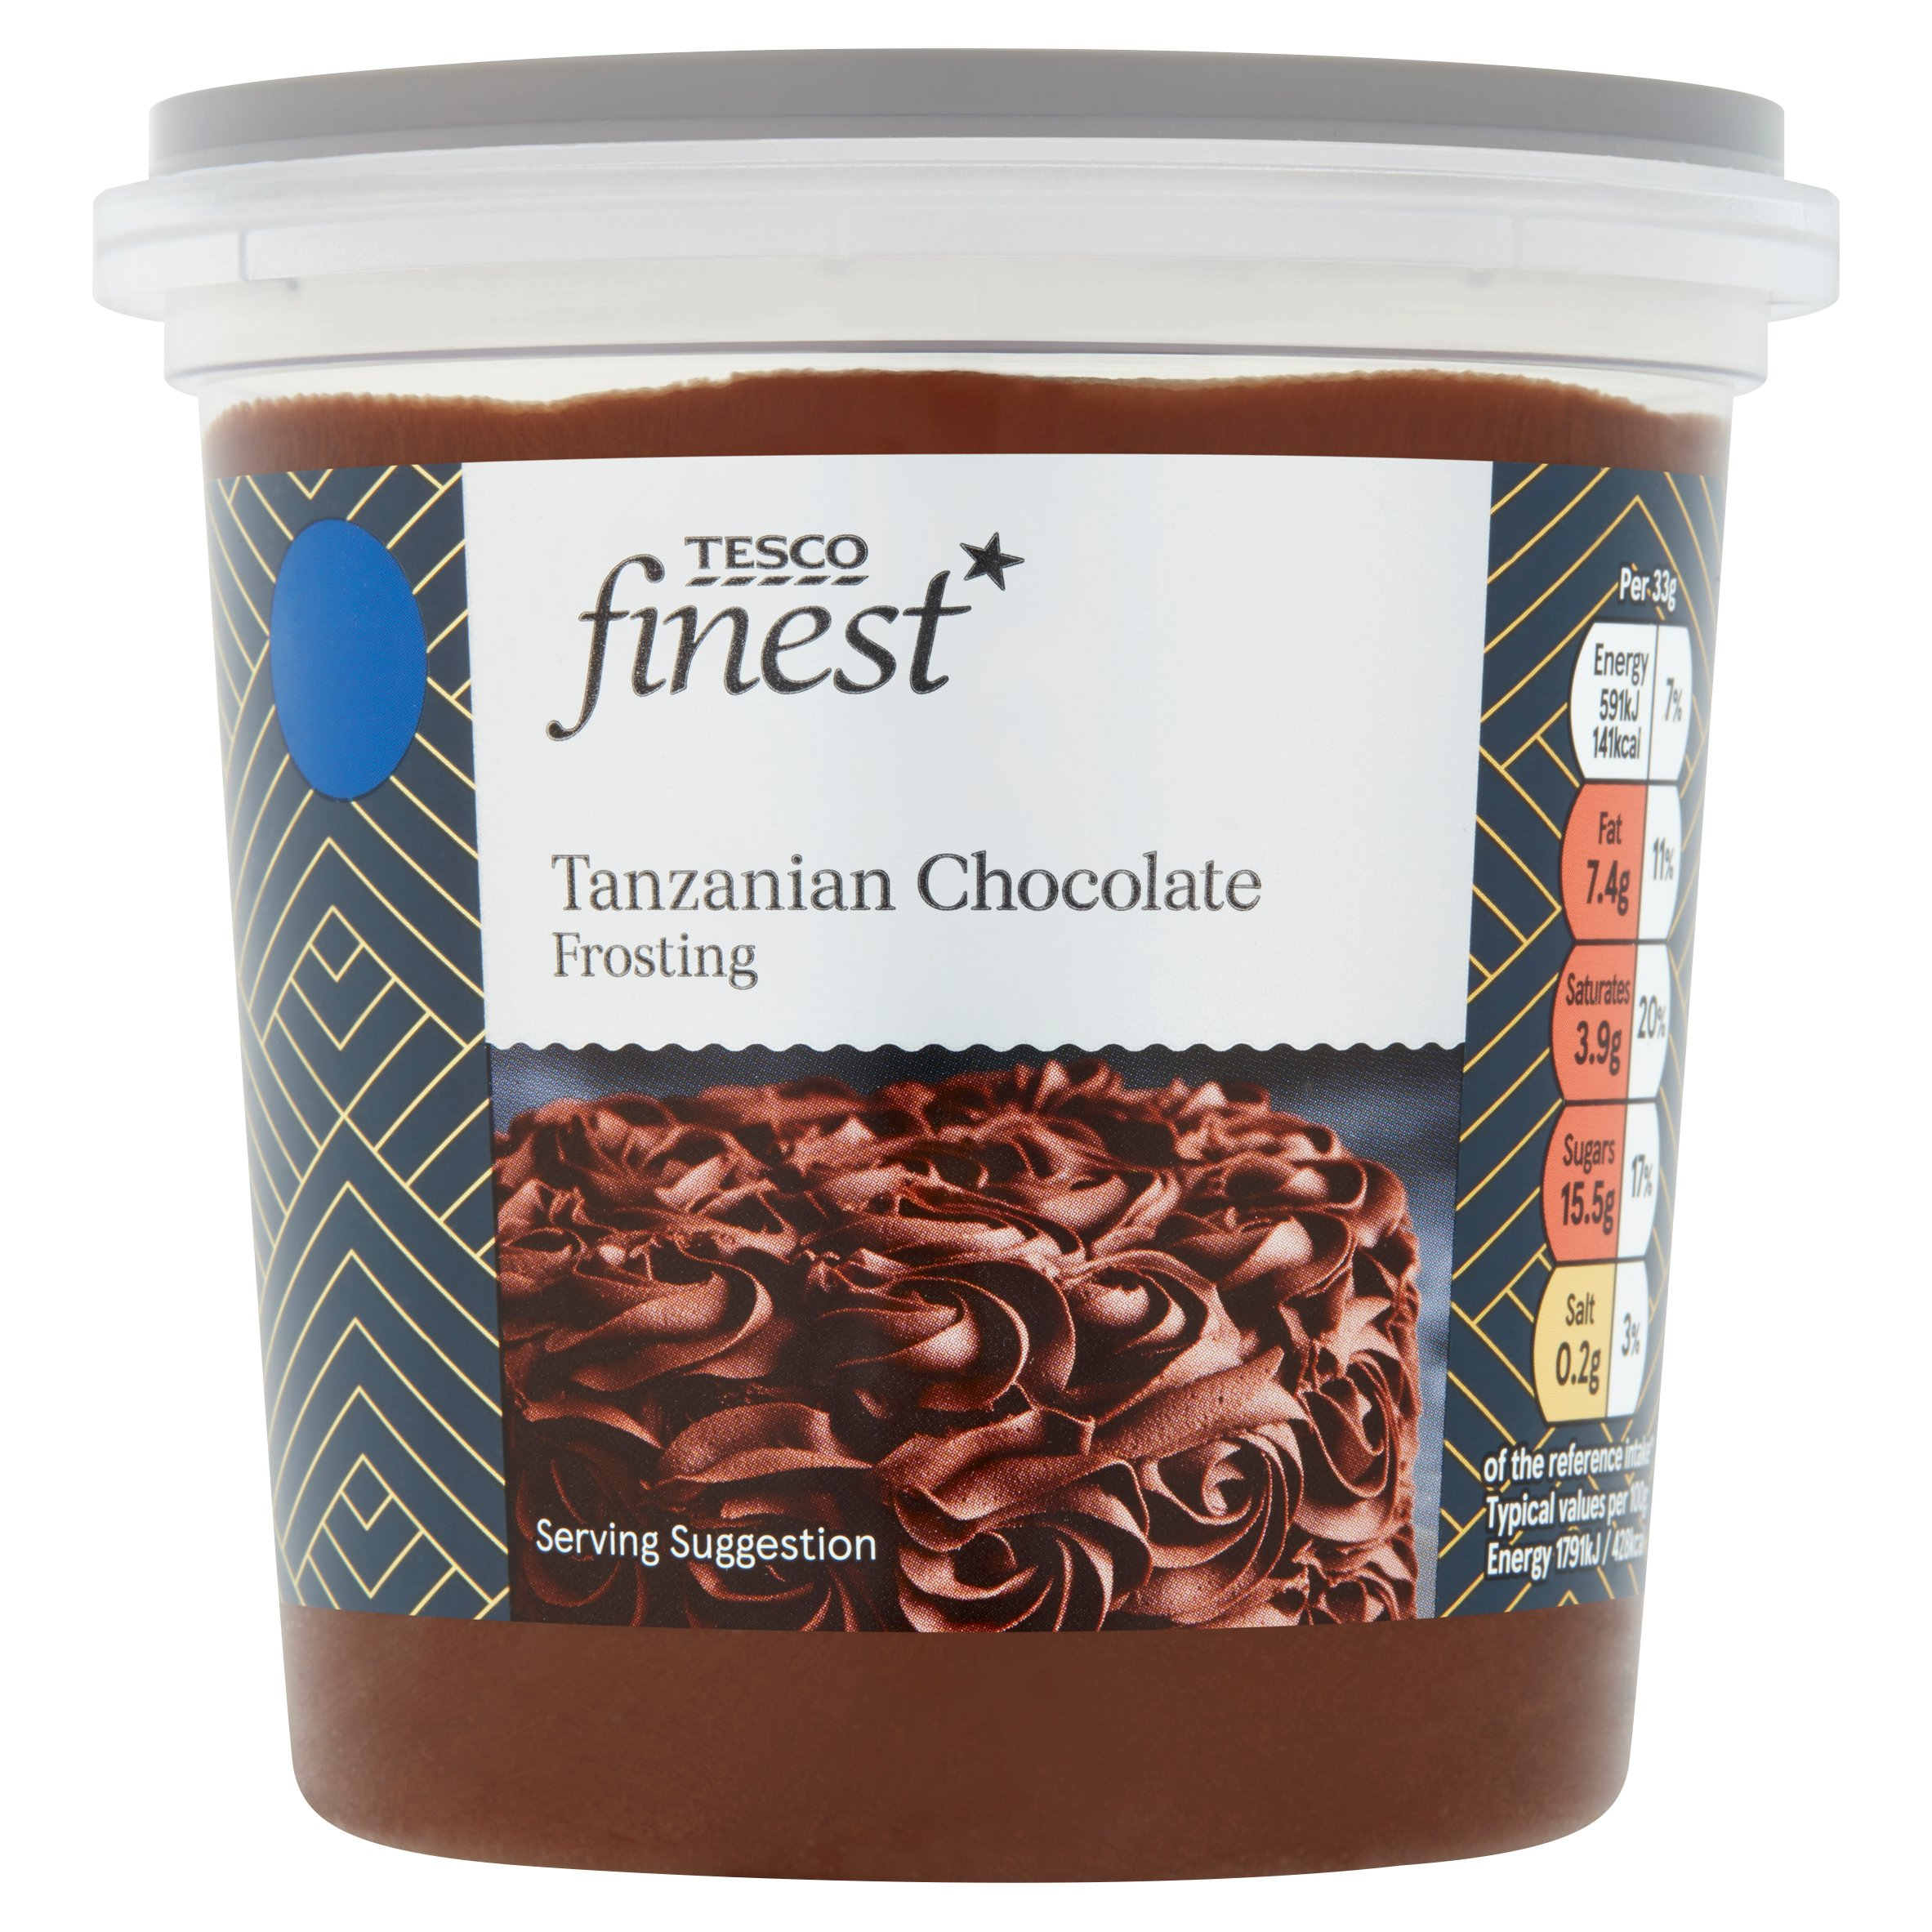 Tesco Finest Tanzanian Chocolate Frosting 400G